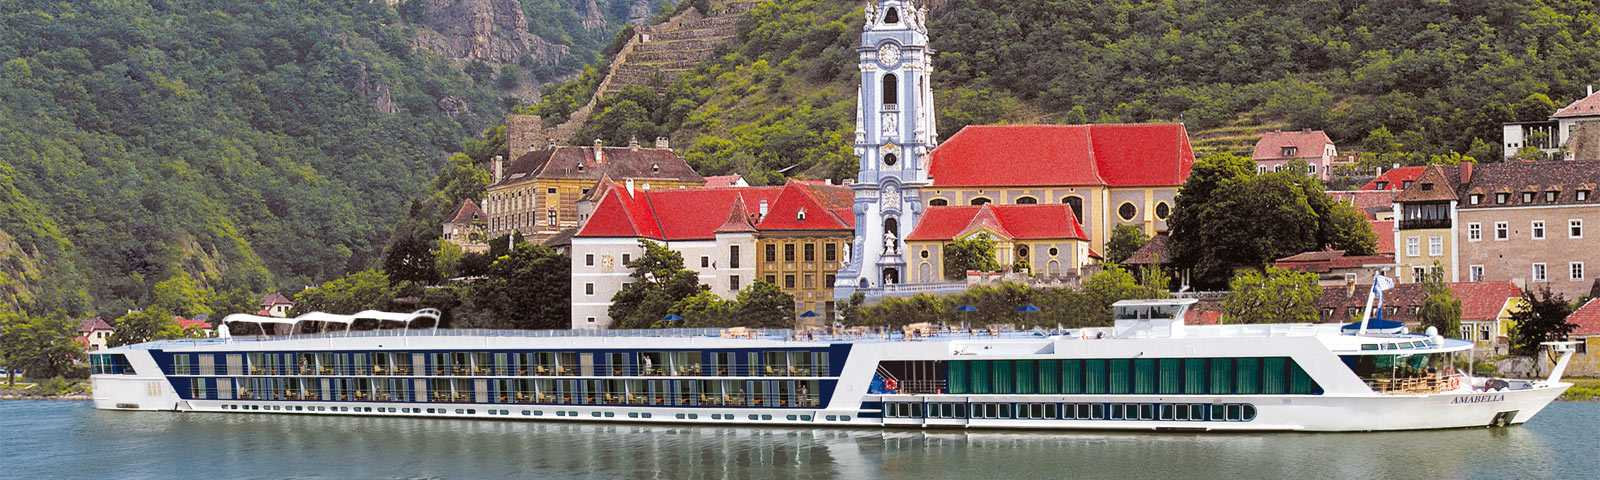 Romantic Danube River Cruise with AmaWaterways